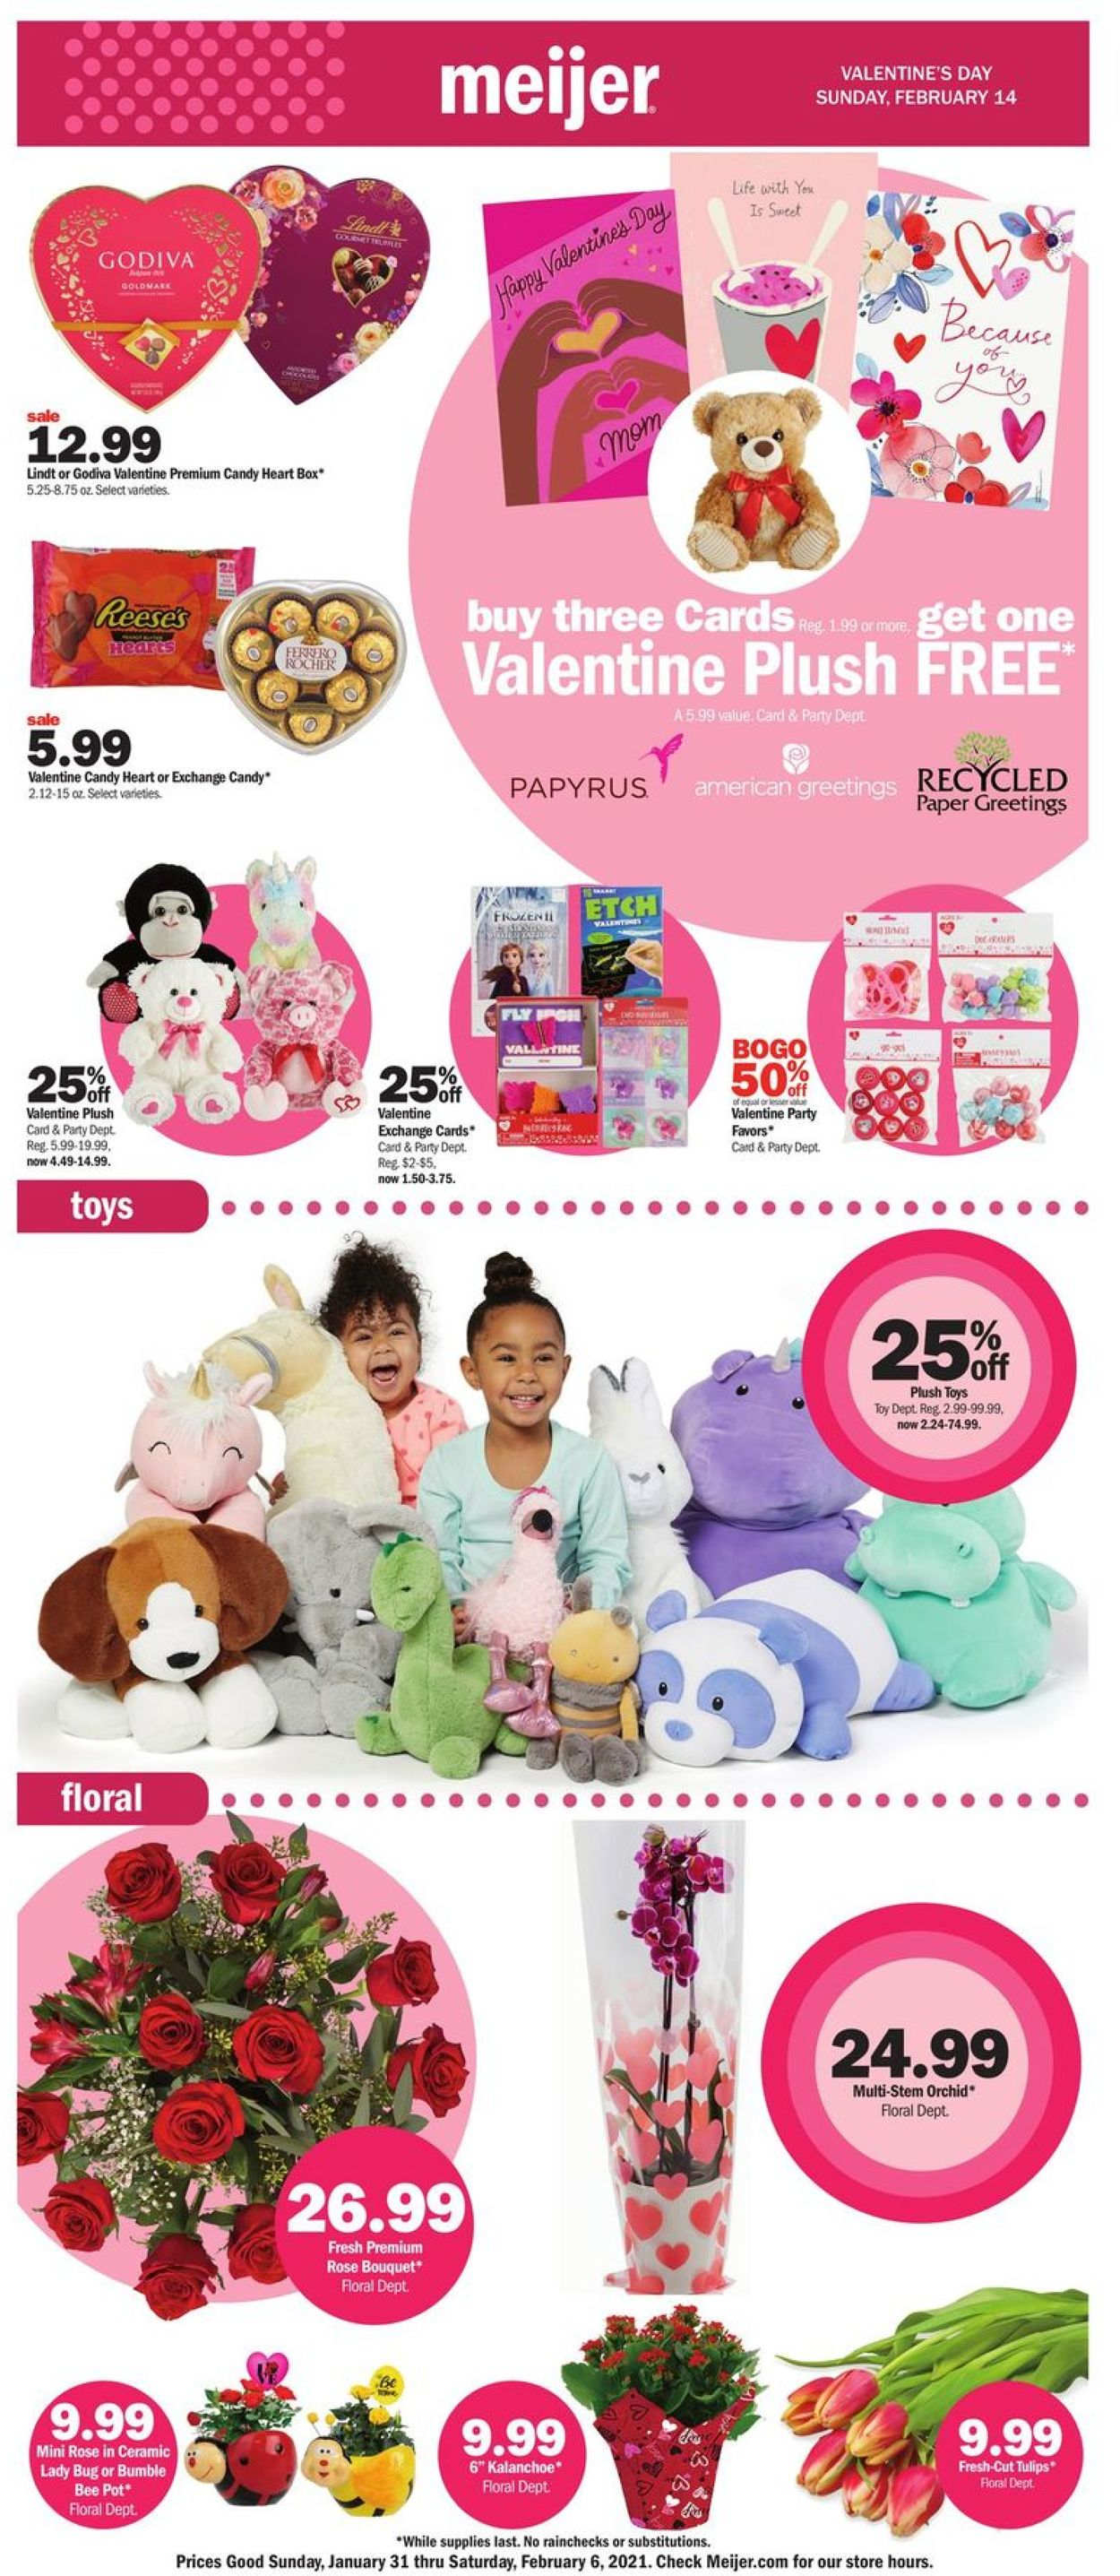 Meijer Valentine's Day Ad 2021 Weekly Ad Circular - valid 01/31-02/06/2021